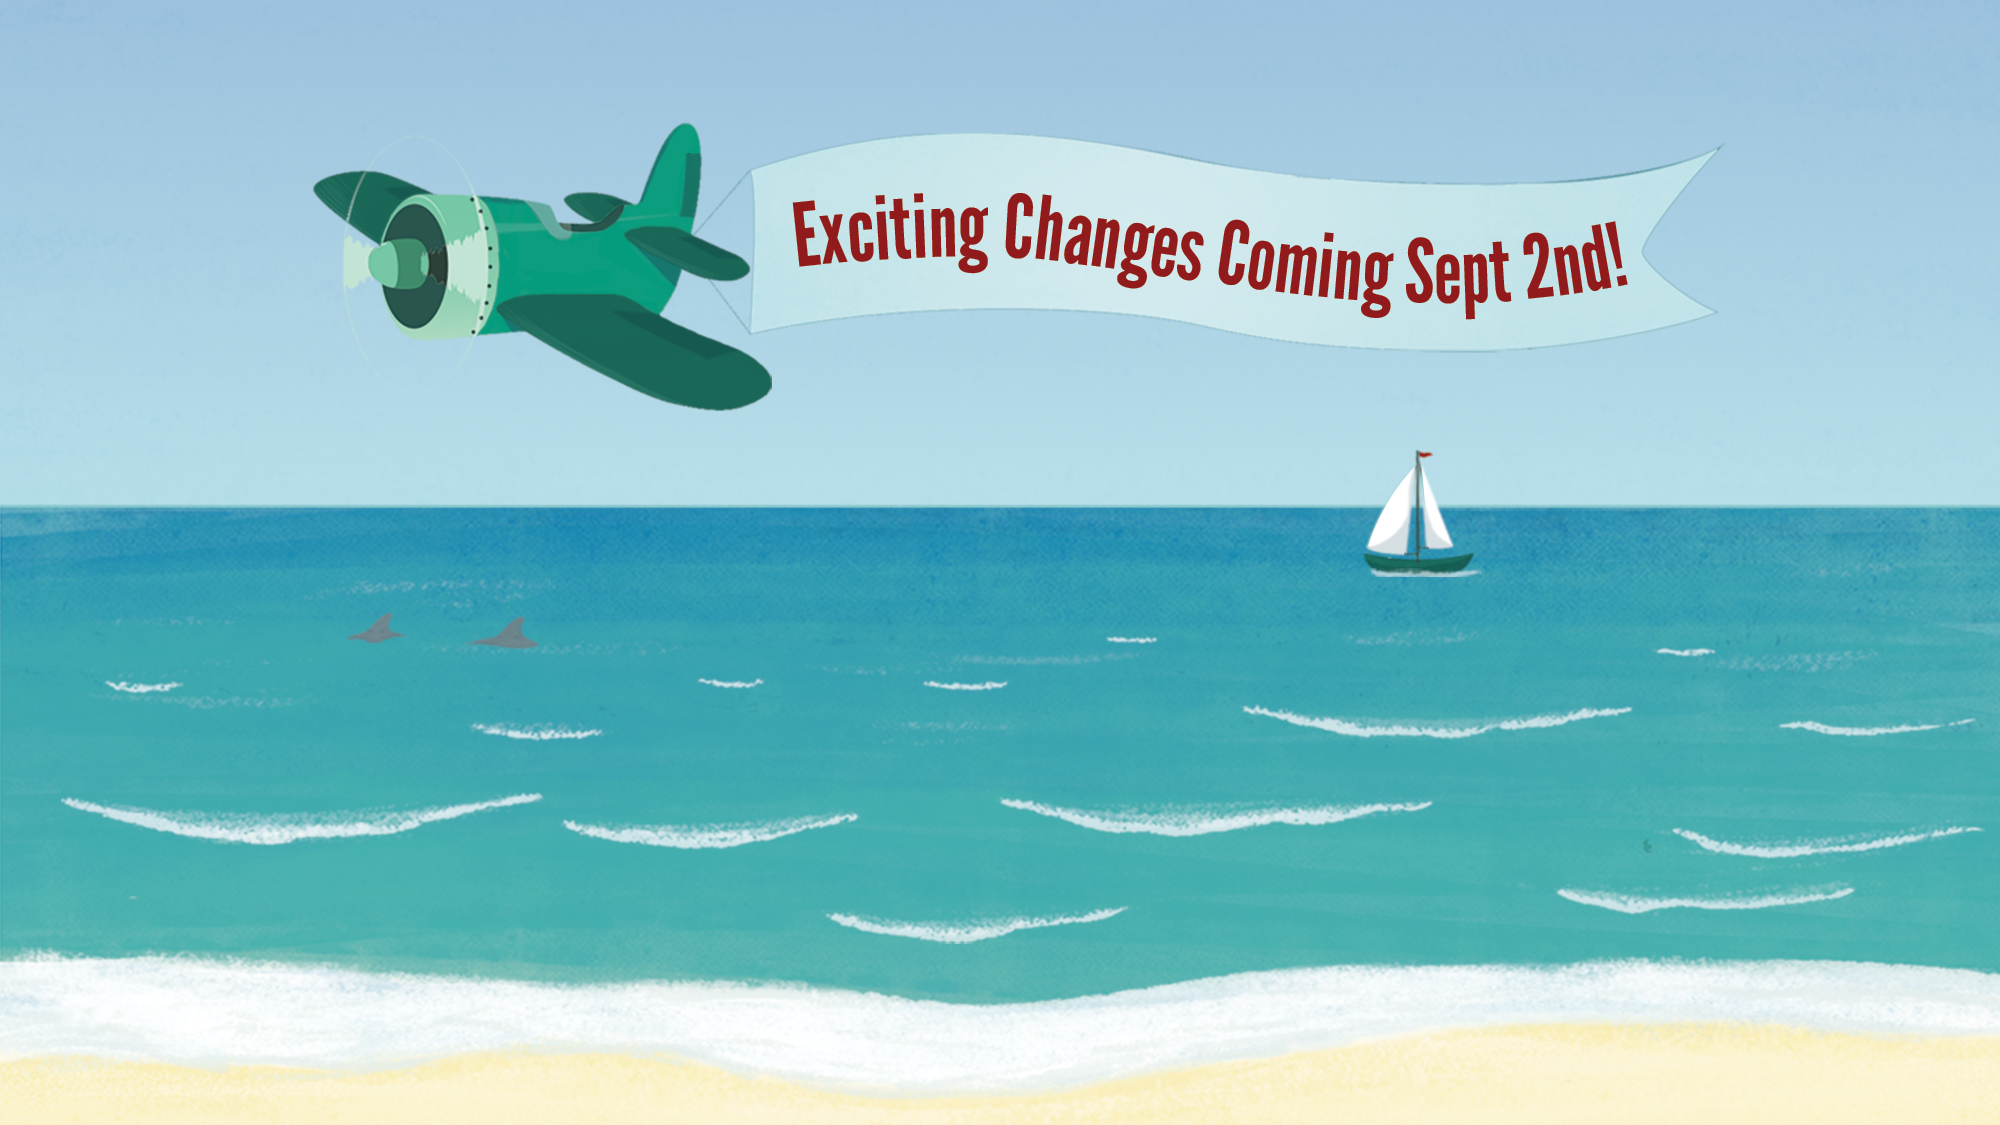 Exciting Changes Coming Sept 2nd!.png